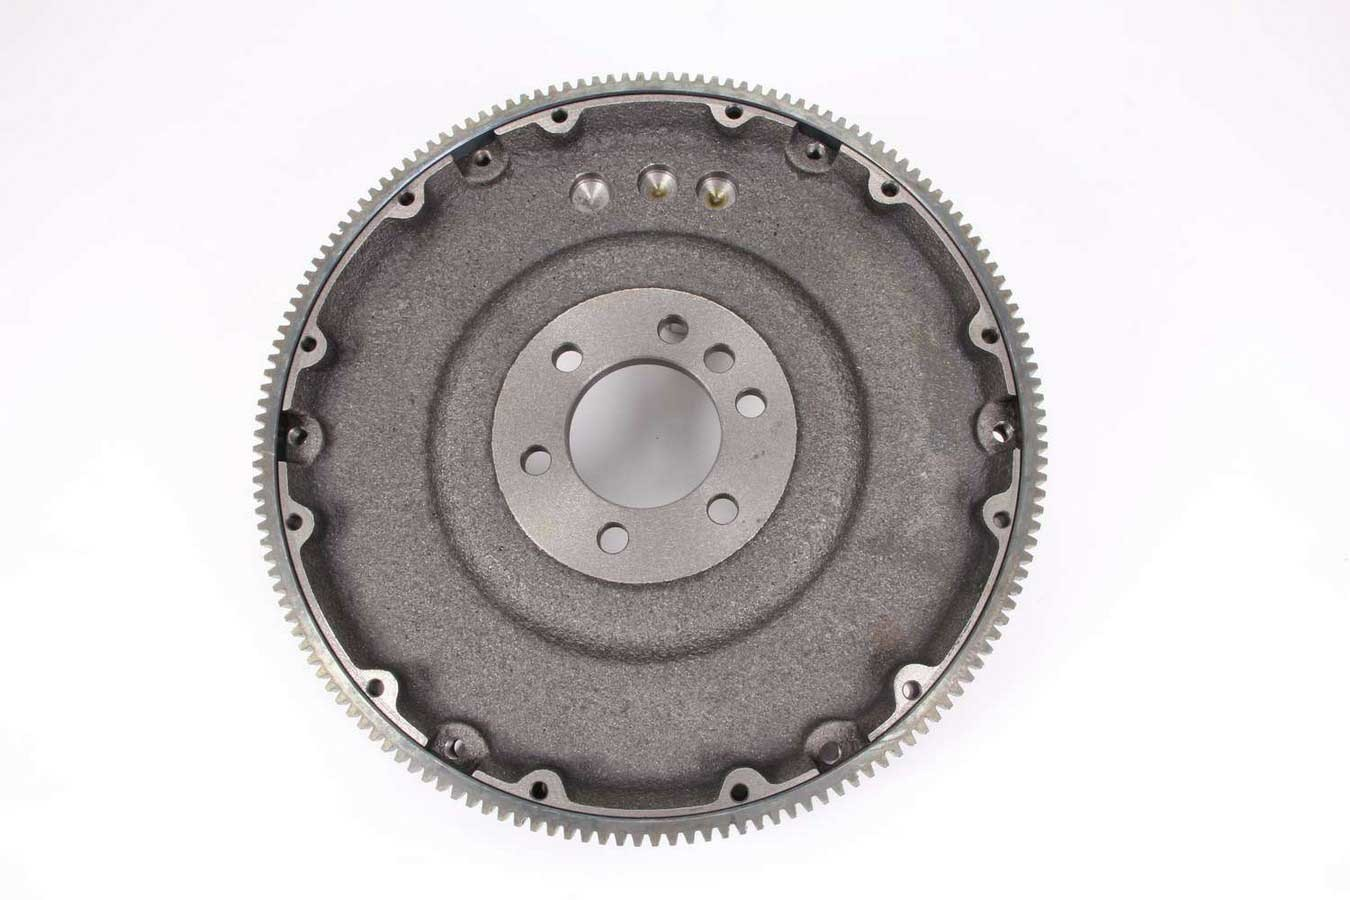 ACE Racing Clutches R105206K Flywheel, 153 Tooth, 16.6 lb, Iron, Natural, Internal Balance, Small Block Chevy, Each